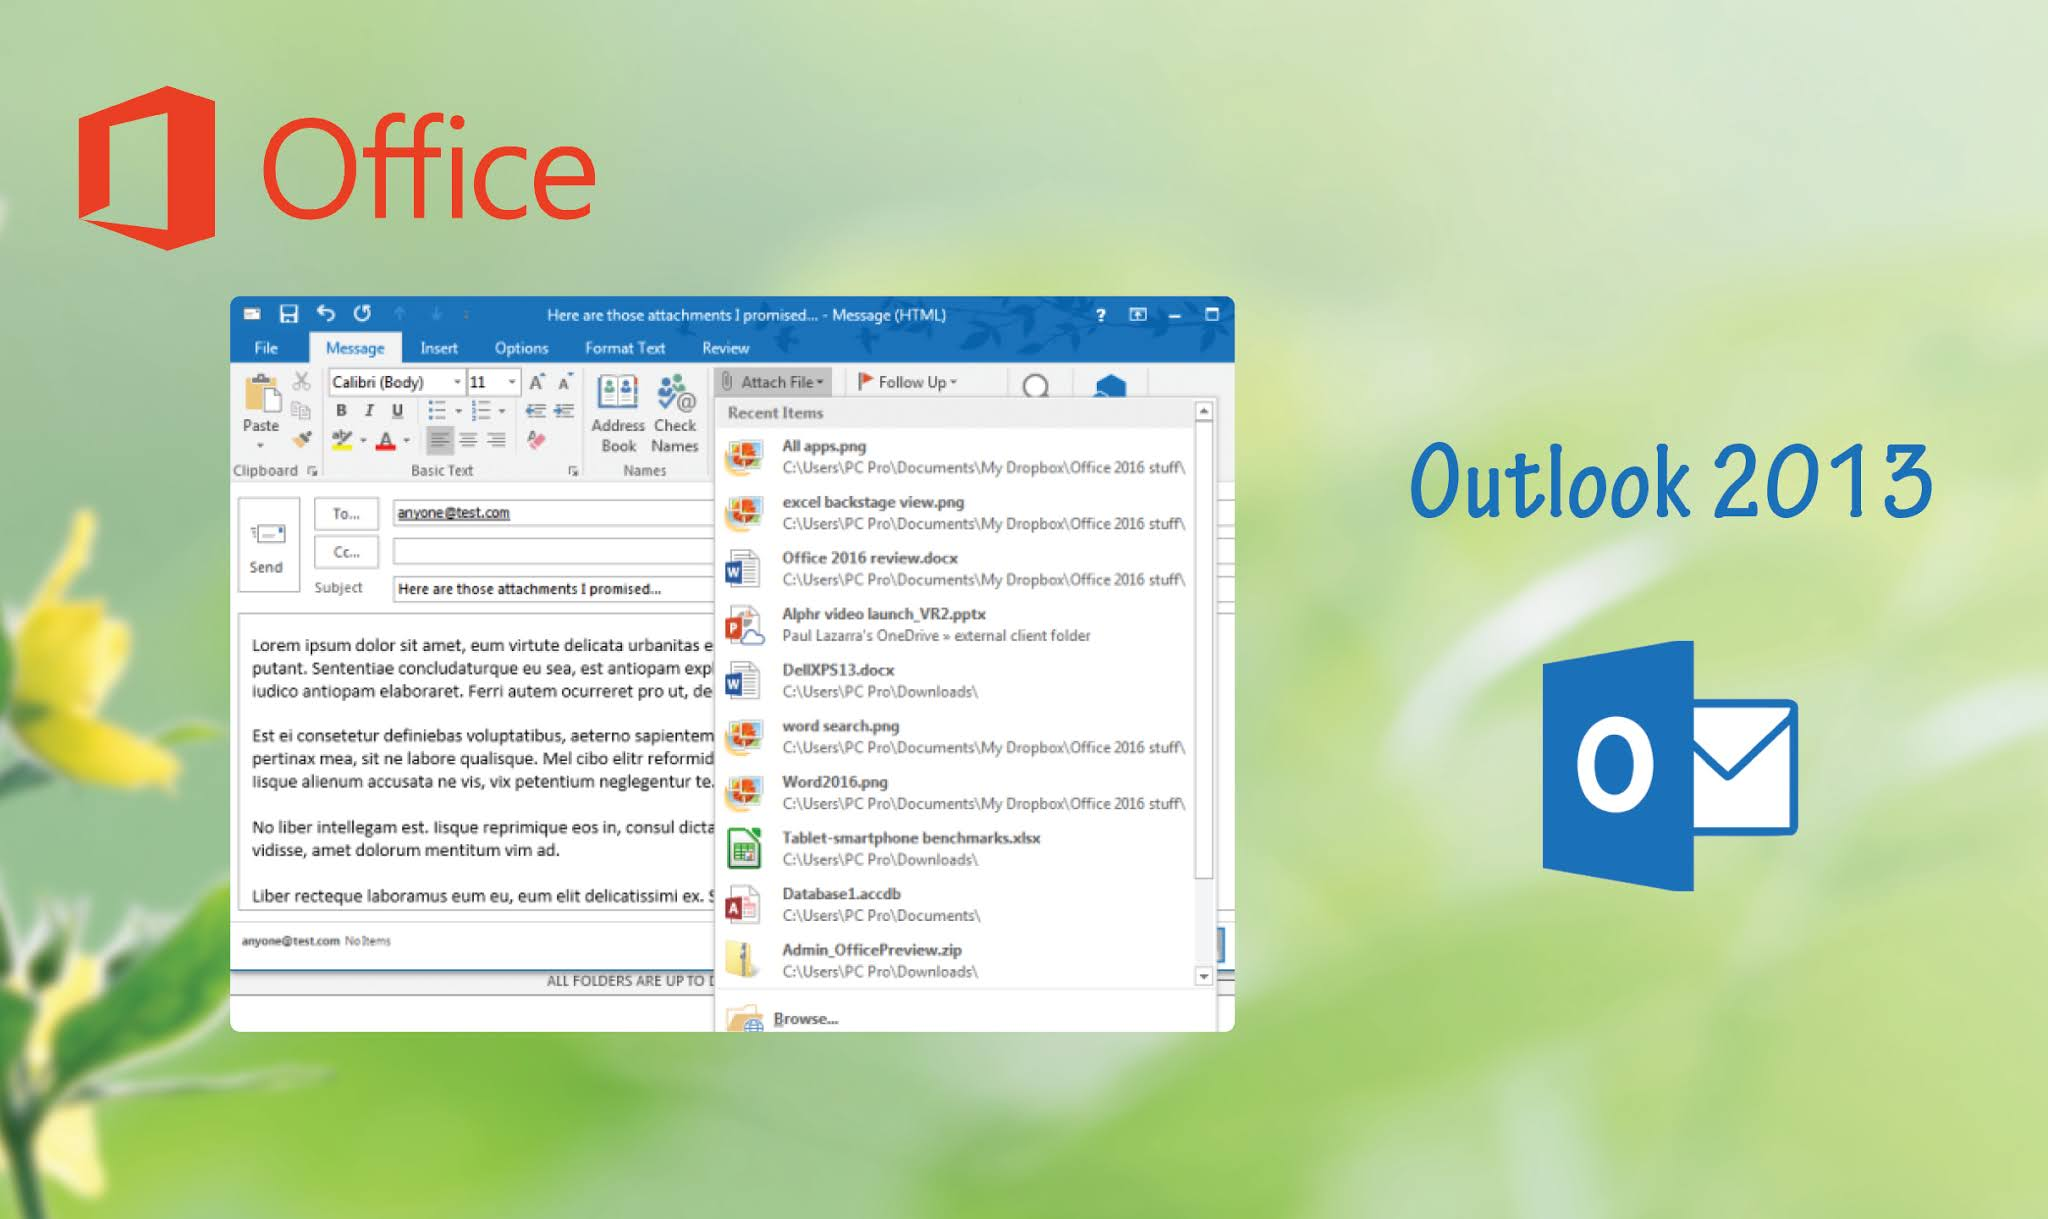 Office Outlook 2013